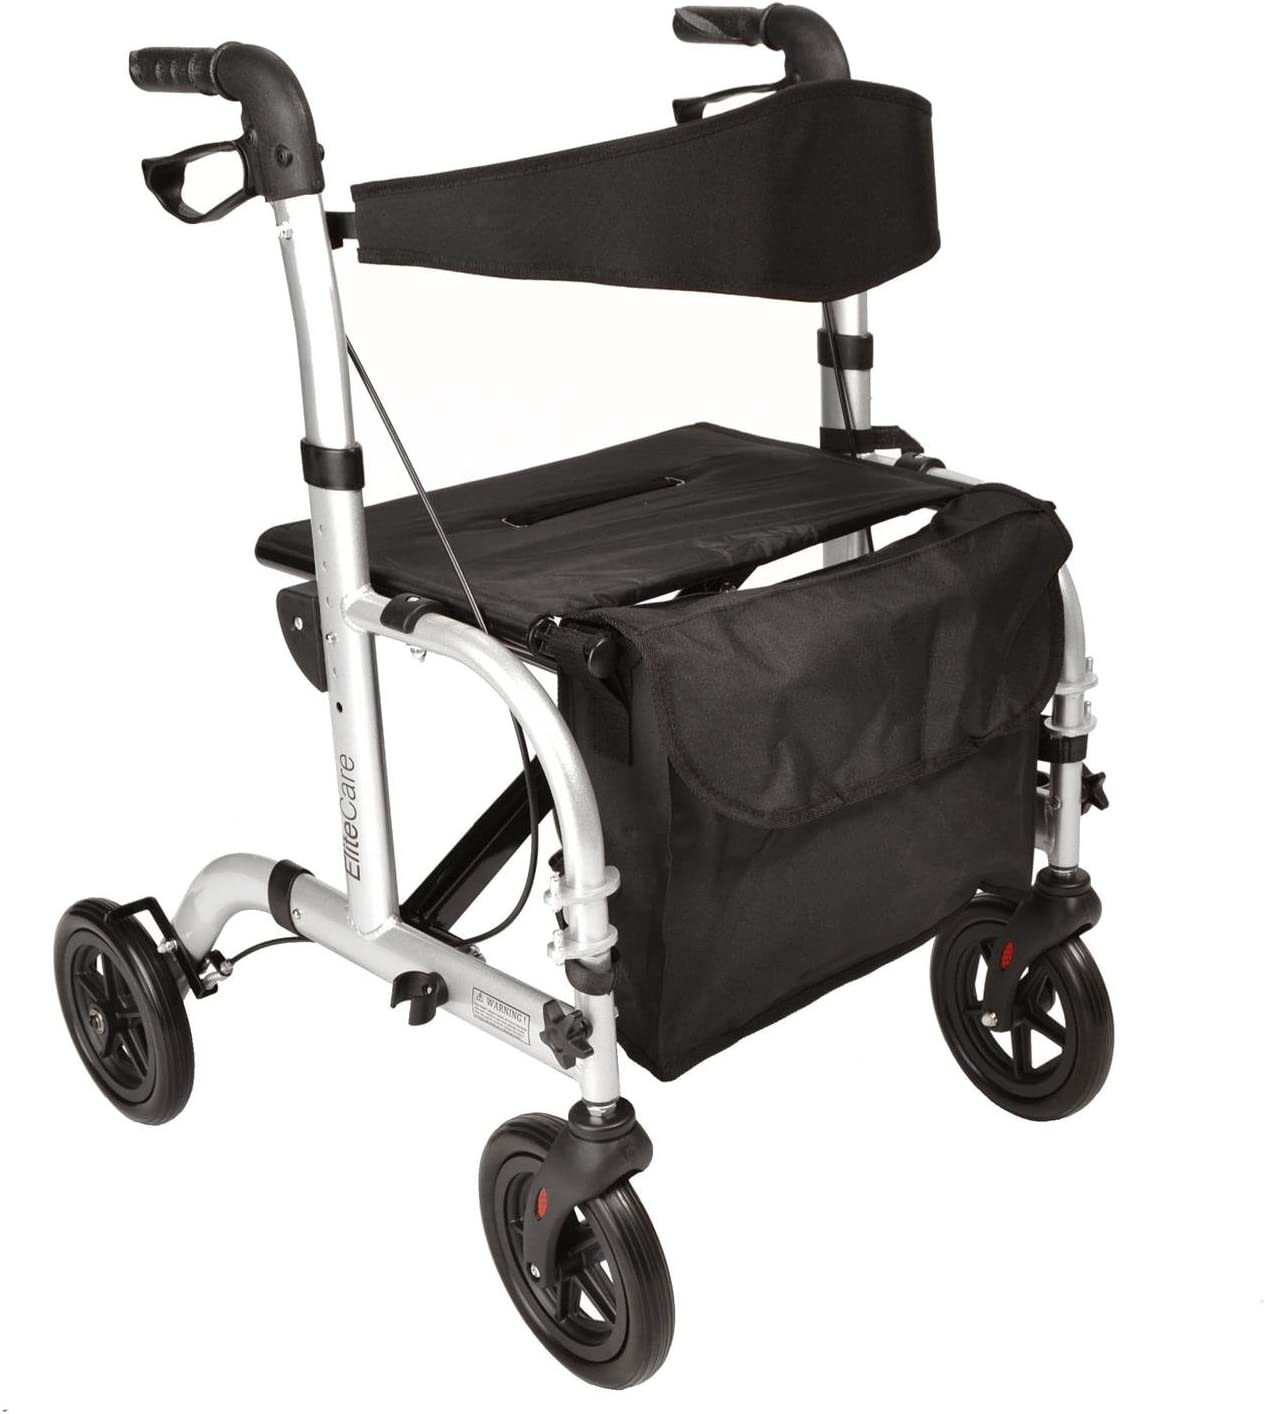 Amazon.com: Elite Care híbrido 2 en 1 andador rollator ...